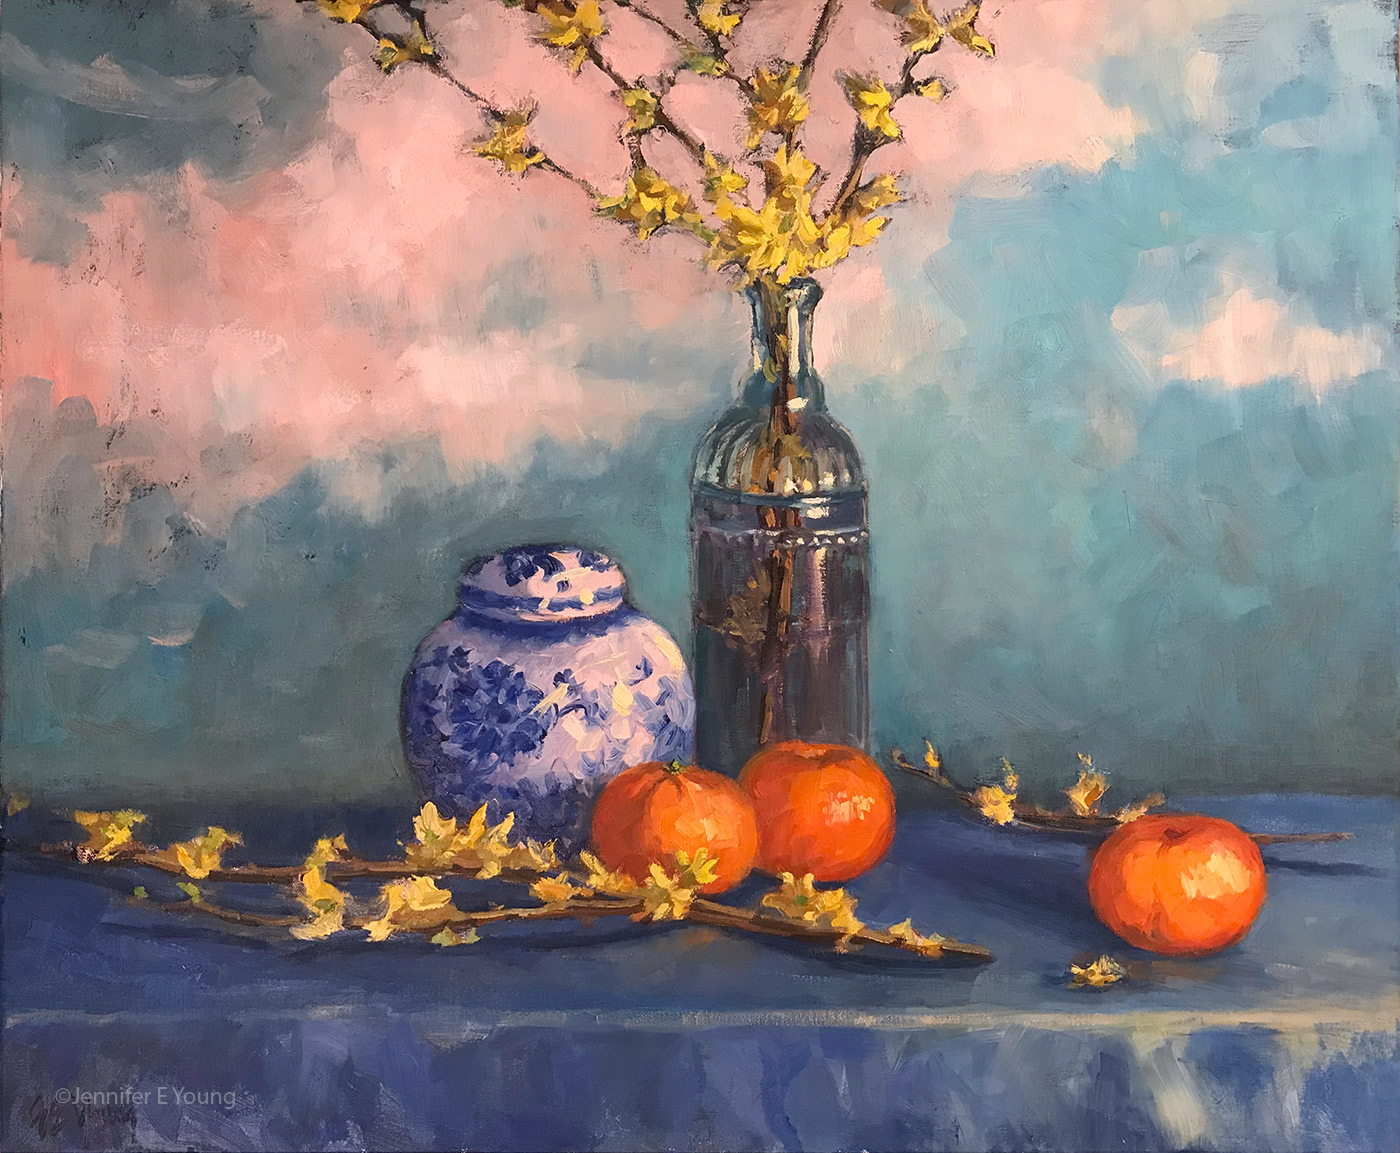 """Forsythia and Delft Blue"", Oil on linen, 20x24"" ©Jennifer E Young (click the image for details)"